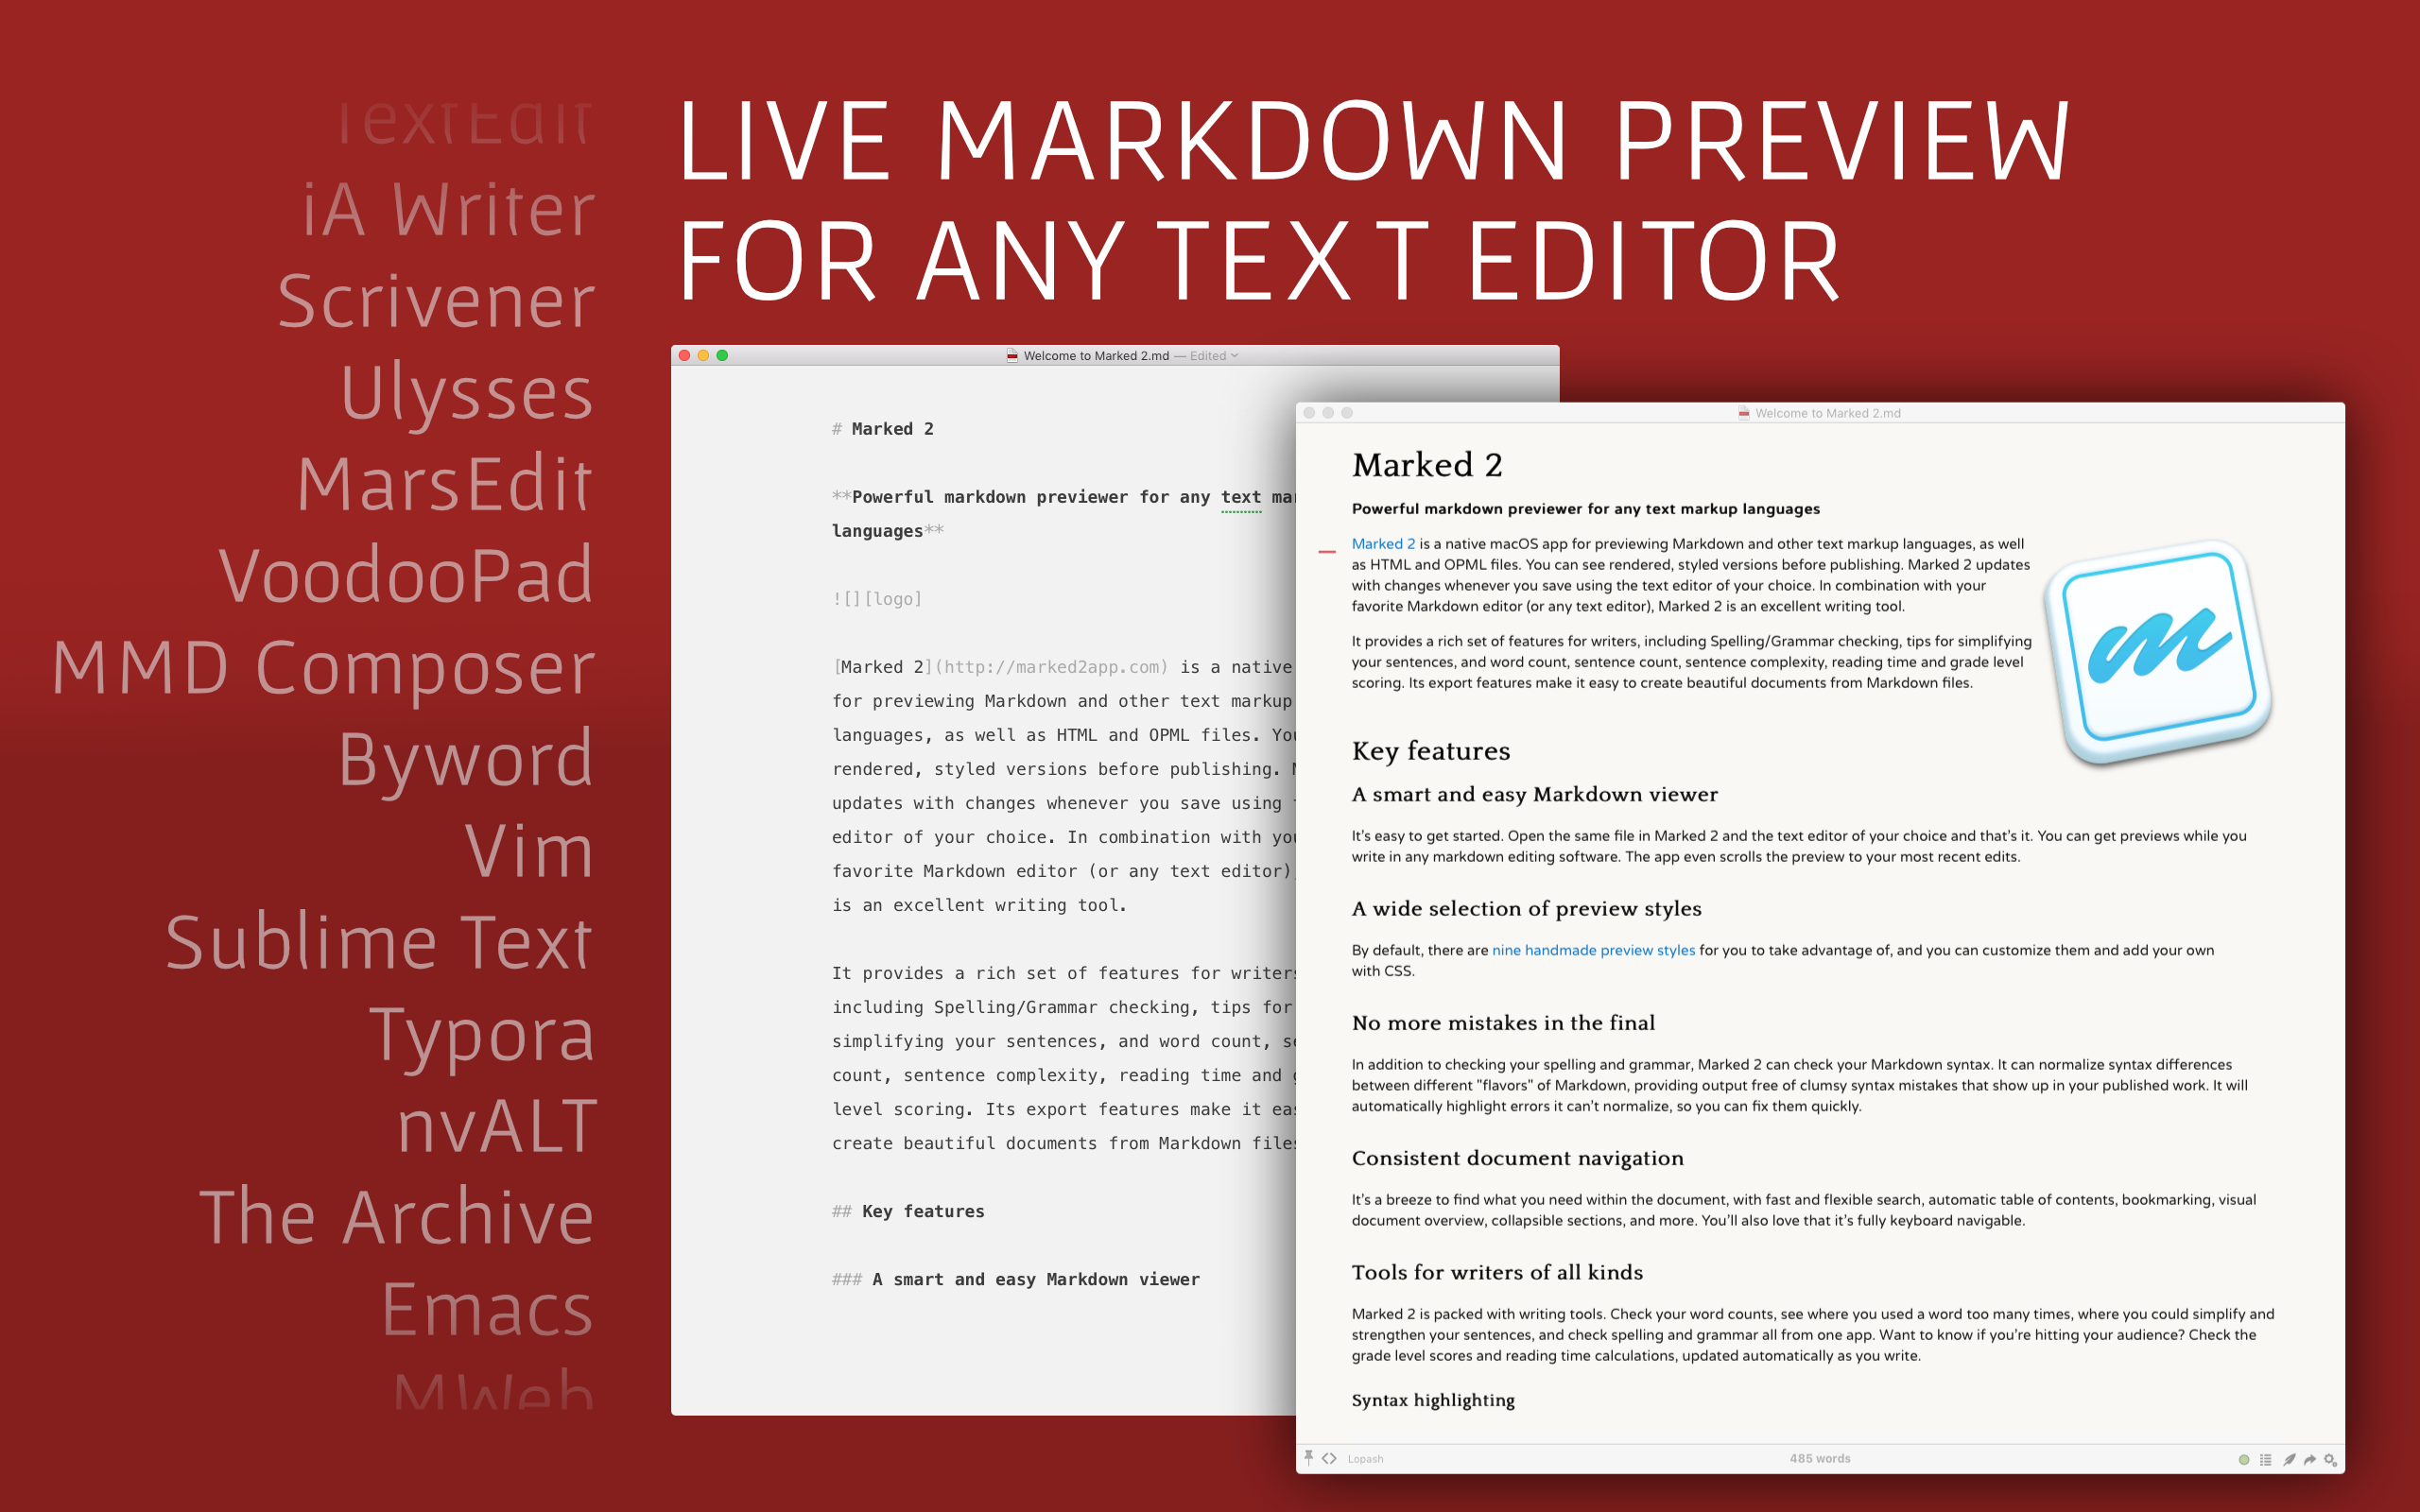 Live markdown preview for any text editors.